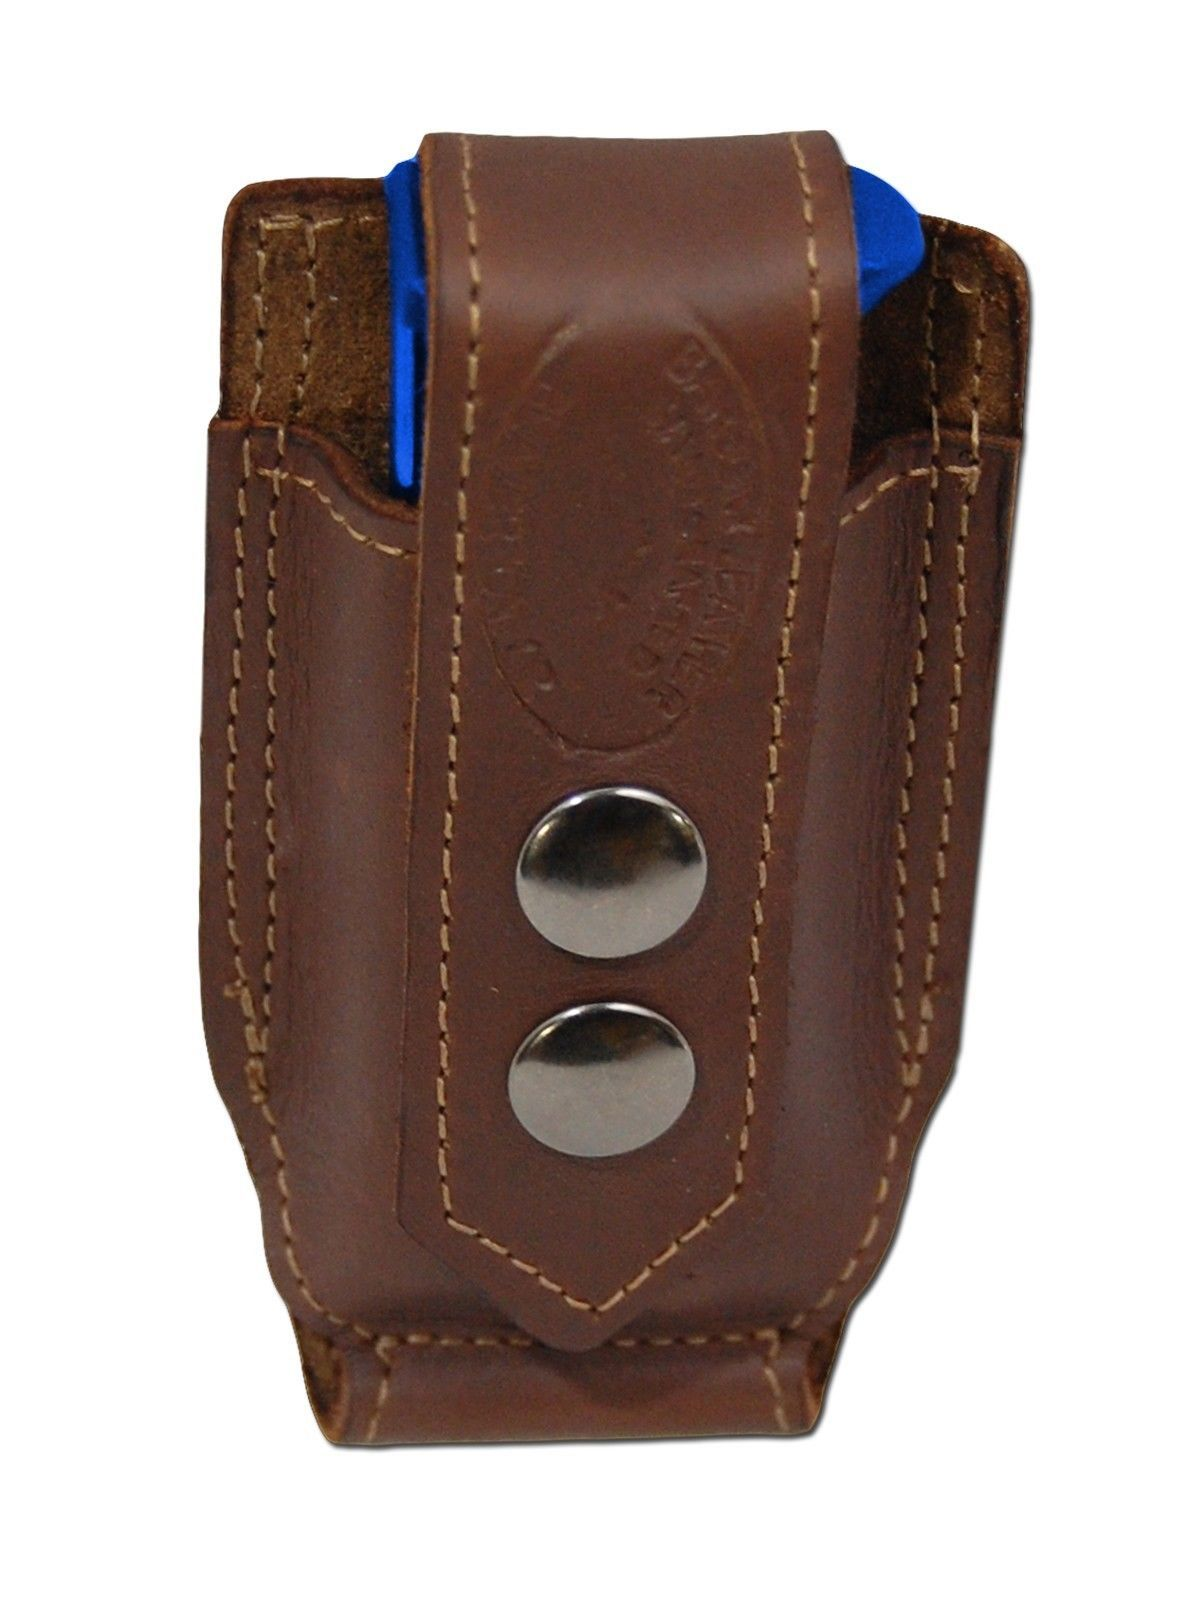 NEW Barsony Brown Leather Single Mag Pouch Beretta, Taurus Mini/Pocket 22 25 380